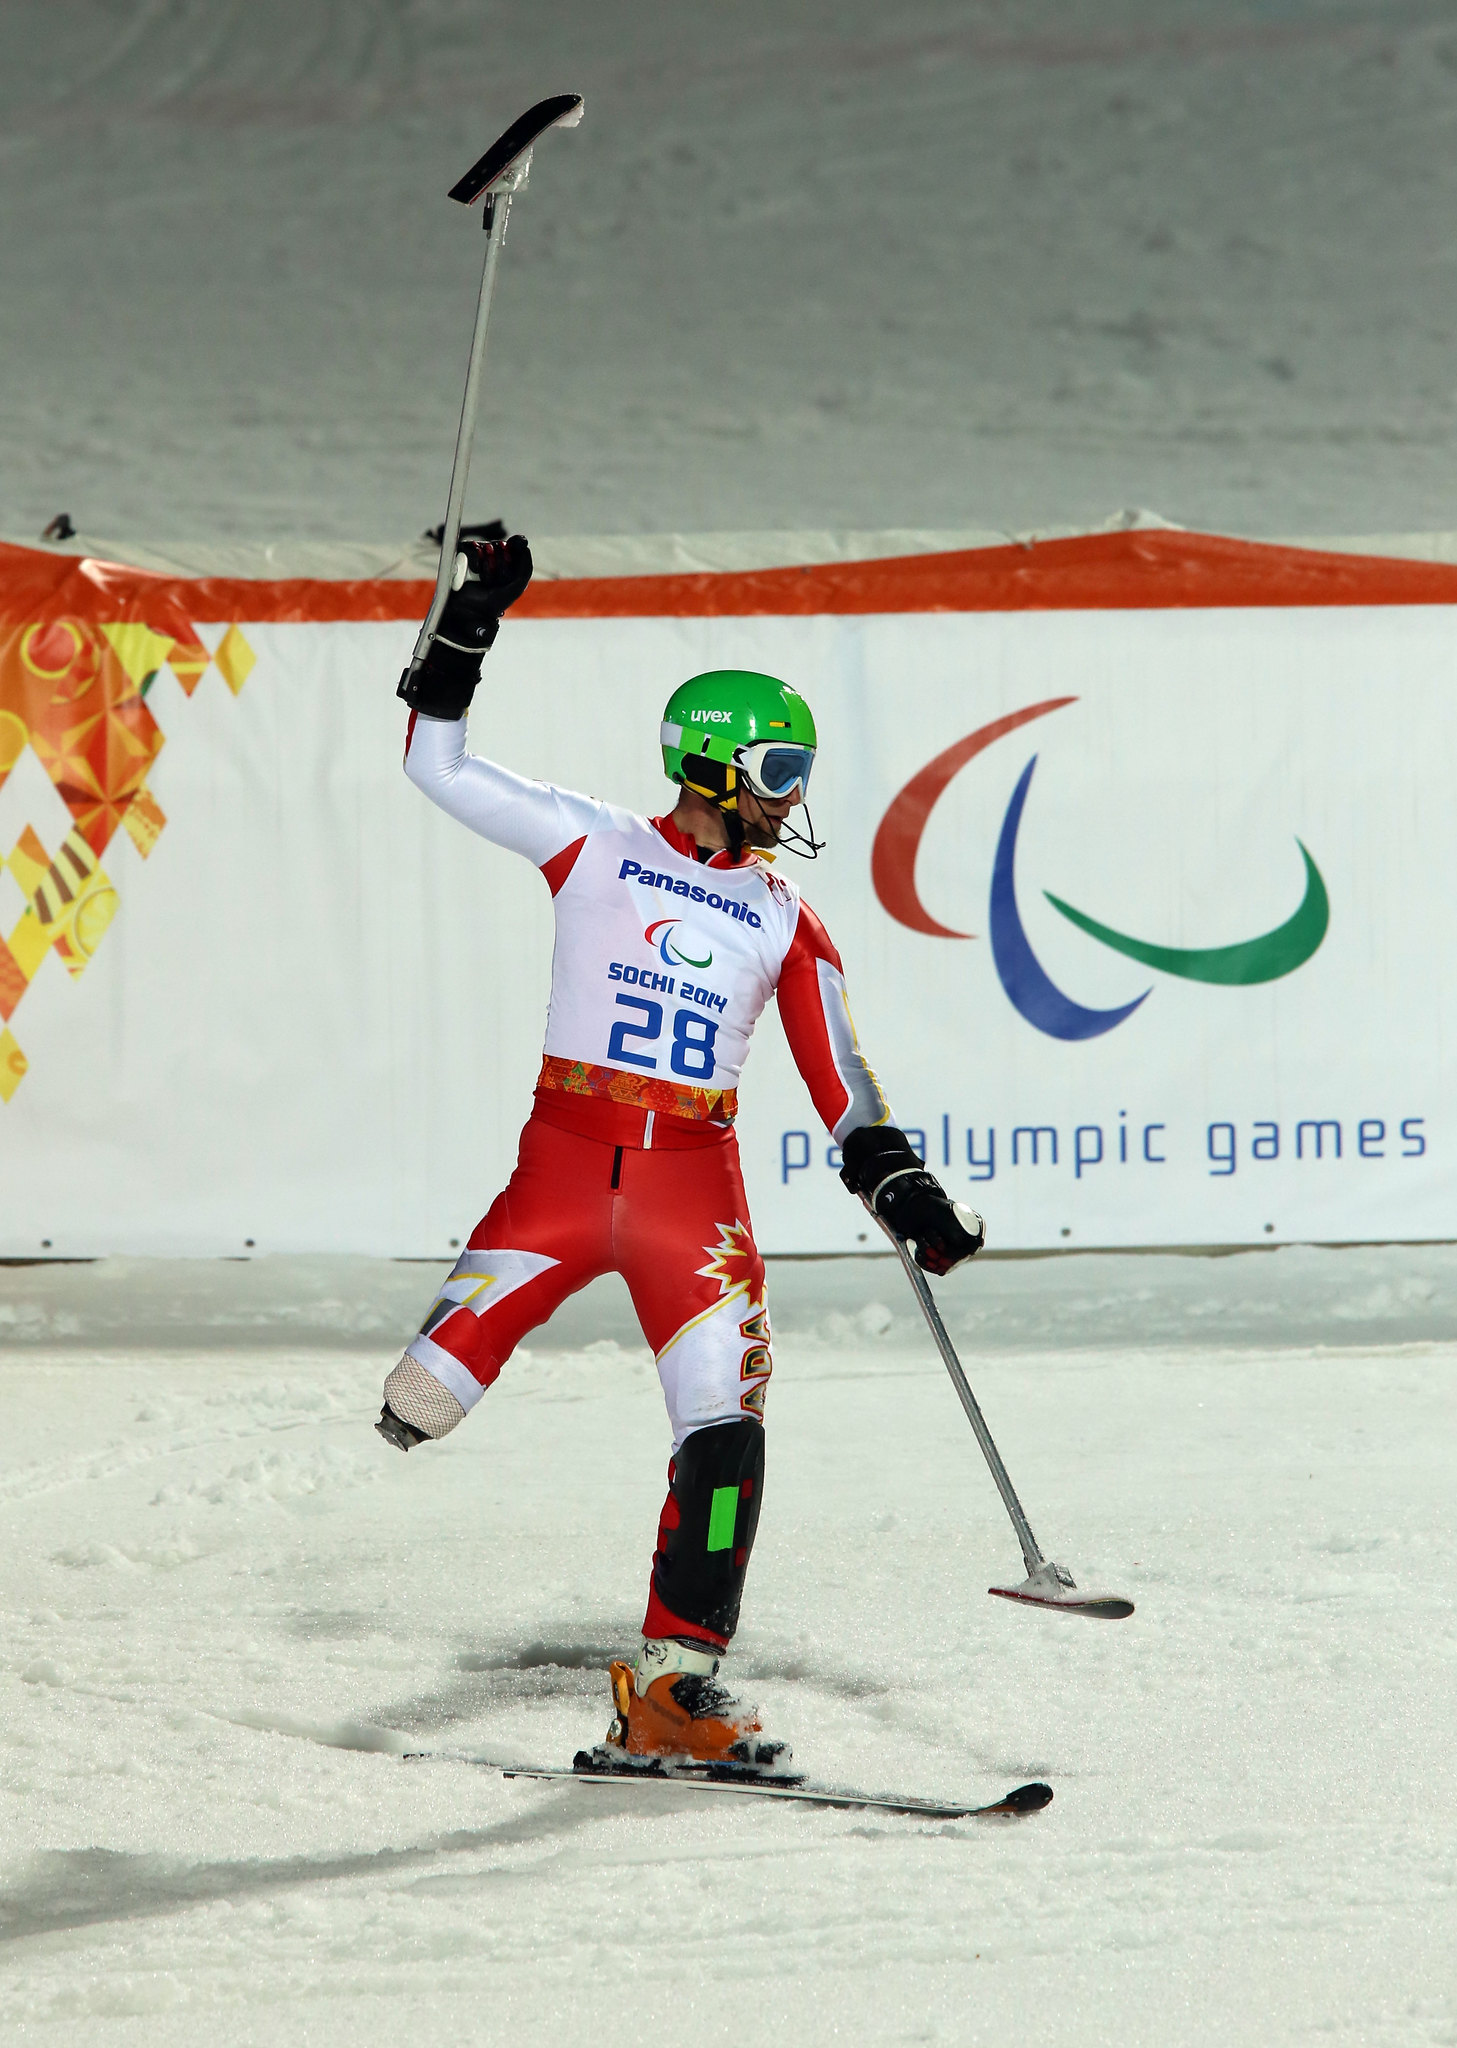 Matt Hallat finishes a solid slalom run in Sochi, RUS at the 2014 Paralympic Winter Games